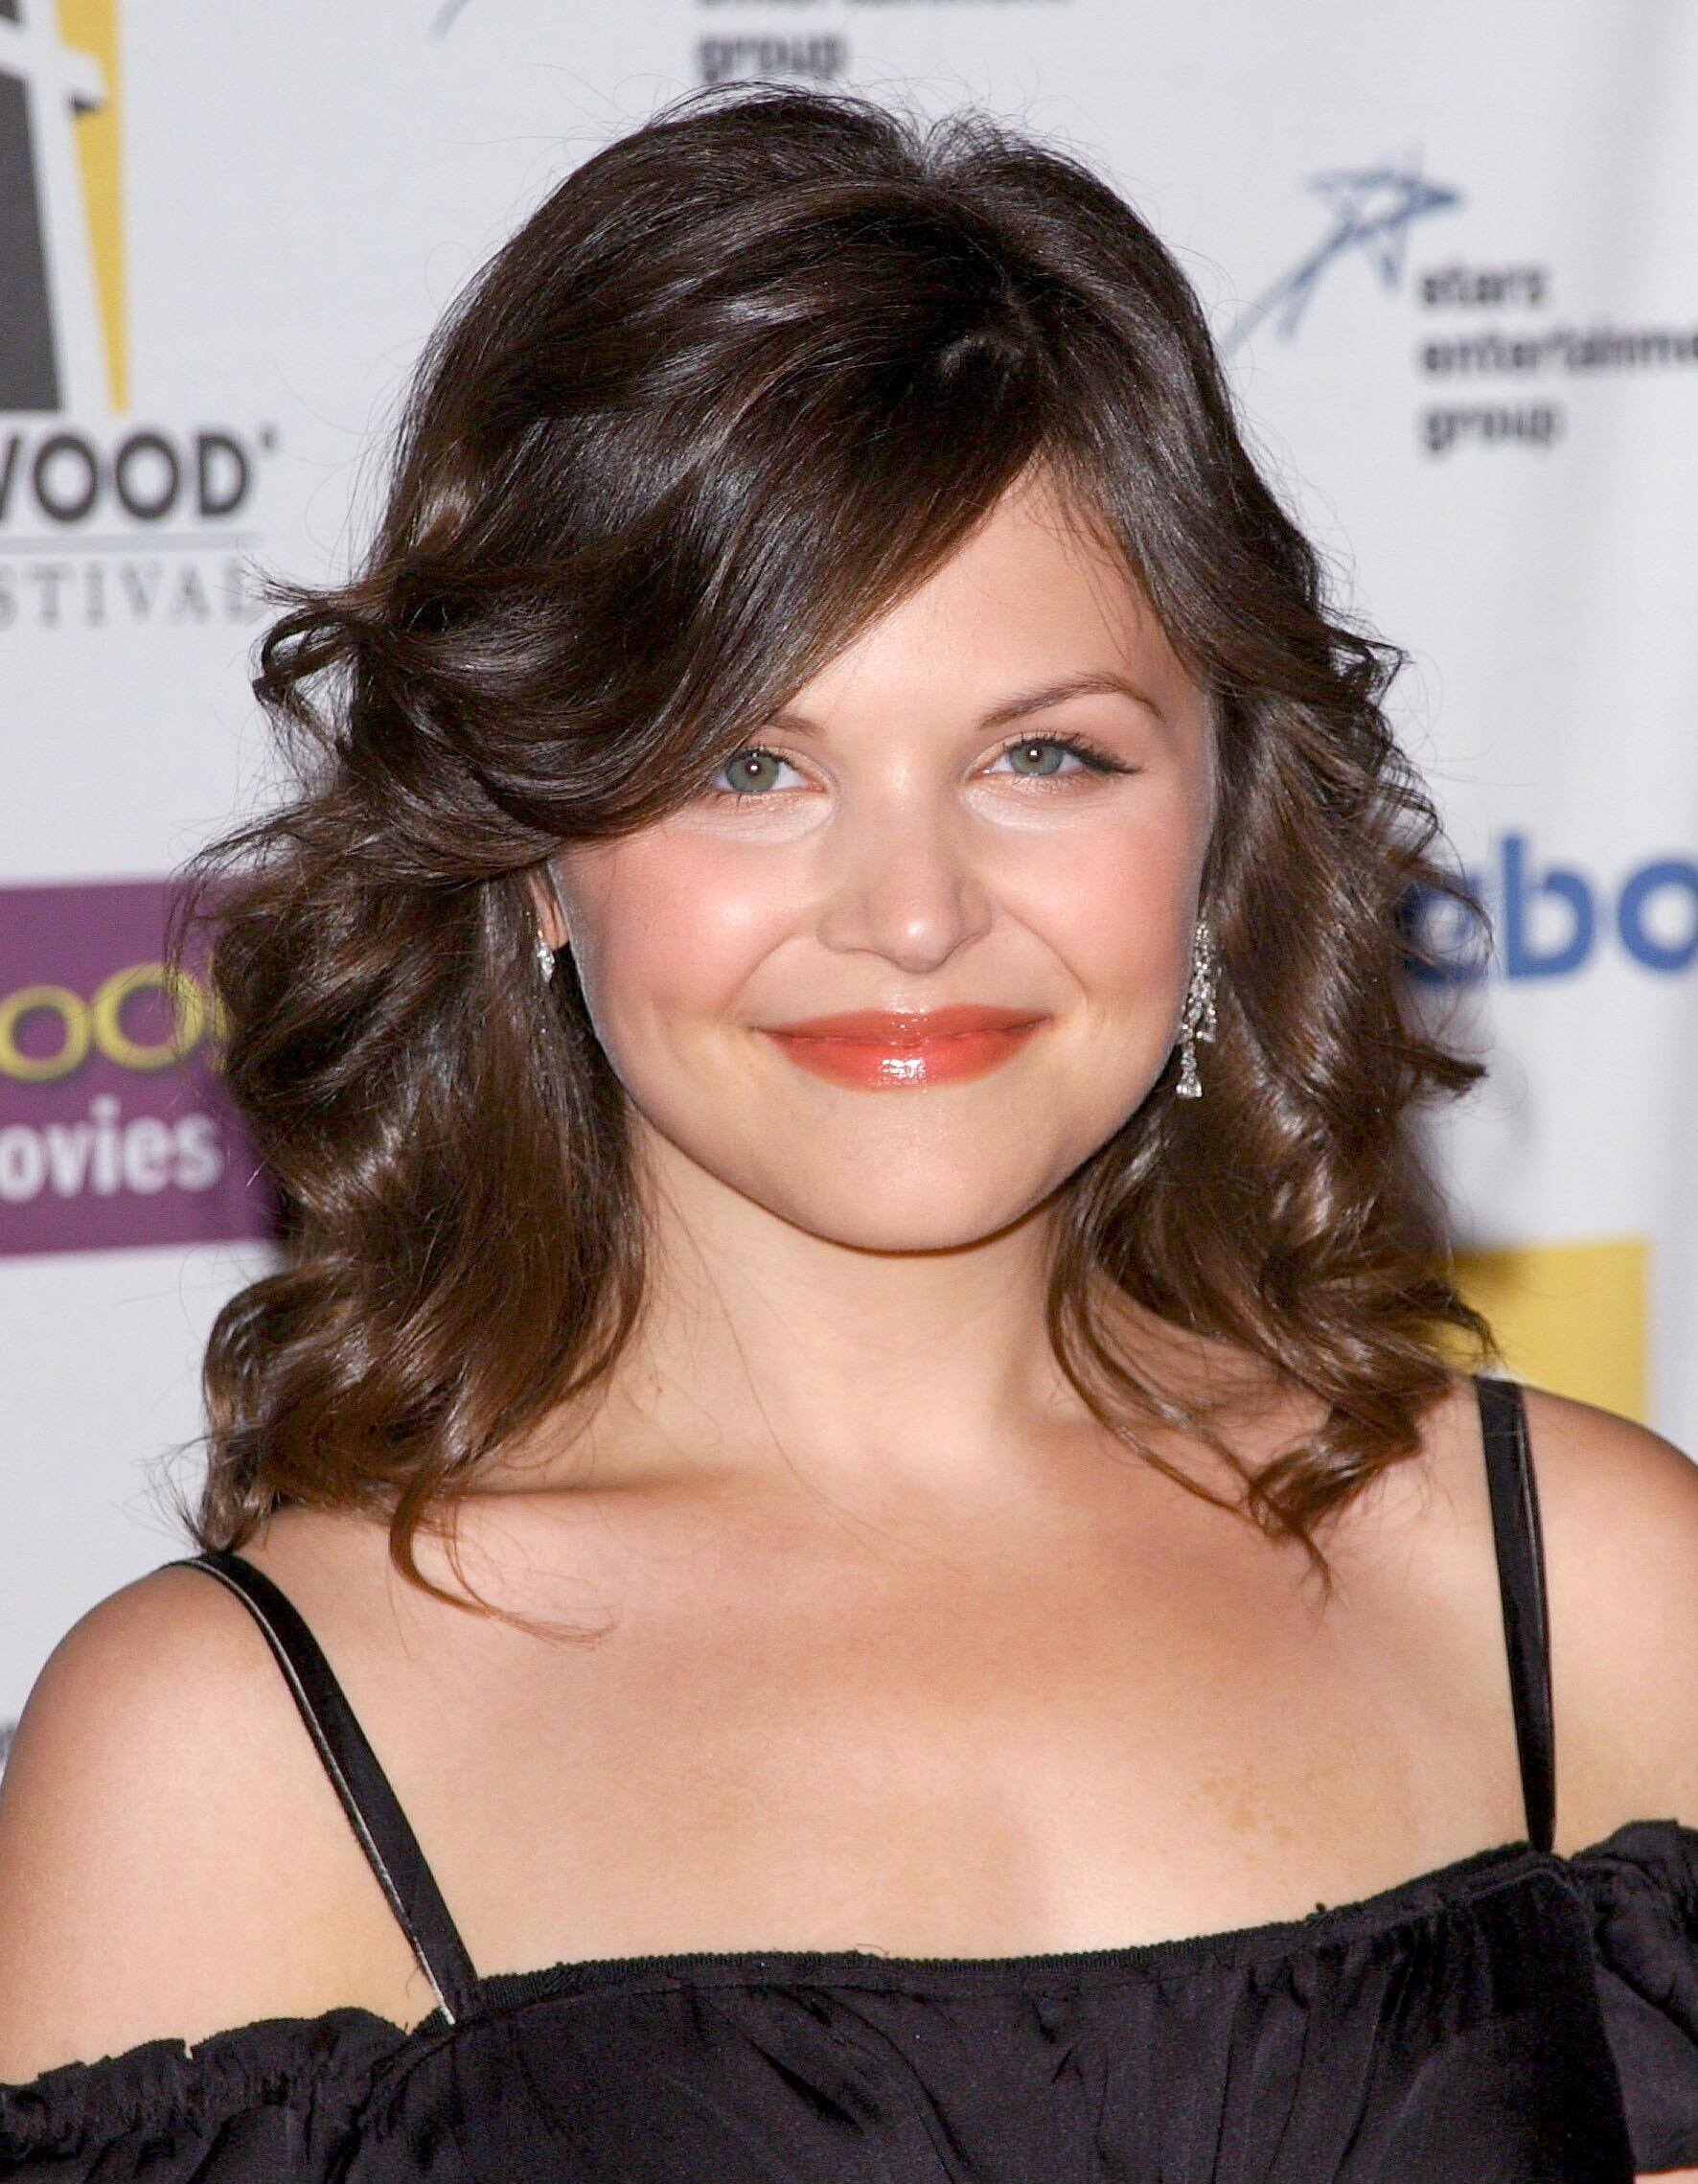 once upon a time actress ginnifer goodwin with flicked layers and shoulder length brunette hair